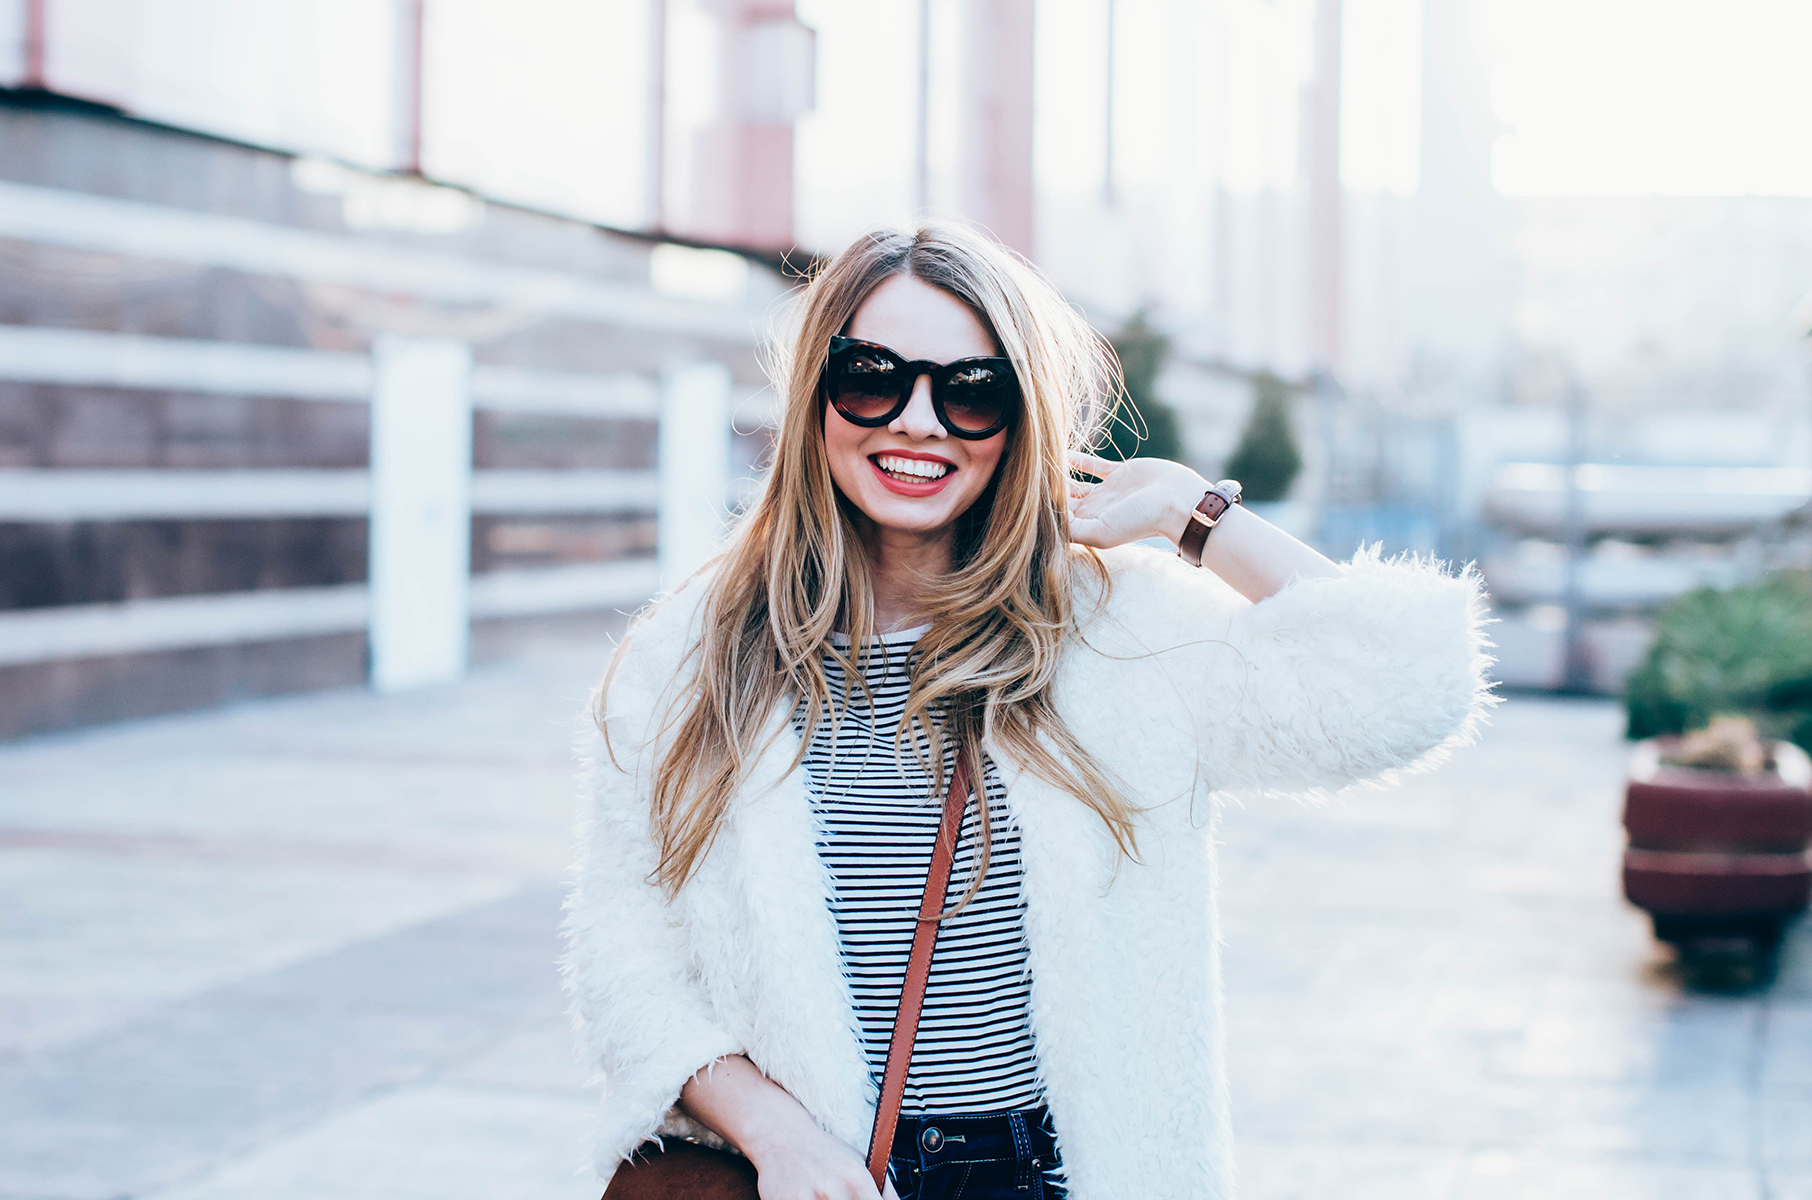 white-fluffy-cardgan-ripped-skinny-jeans-suede-boots-camel-scarf-fluffy-keyrng-cat-eye-sunglasses (1)